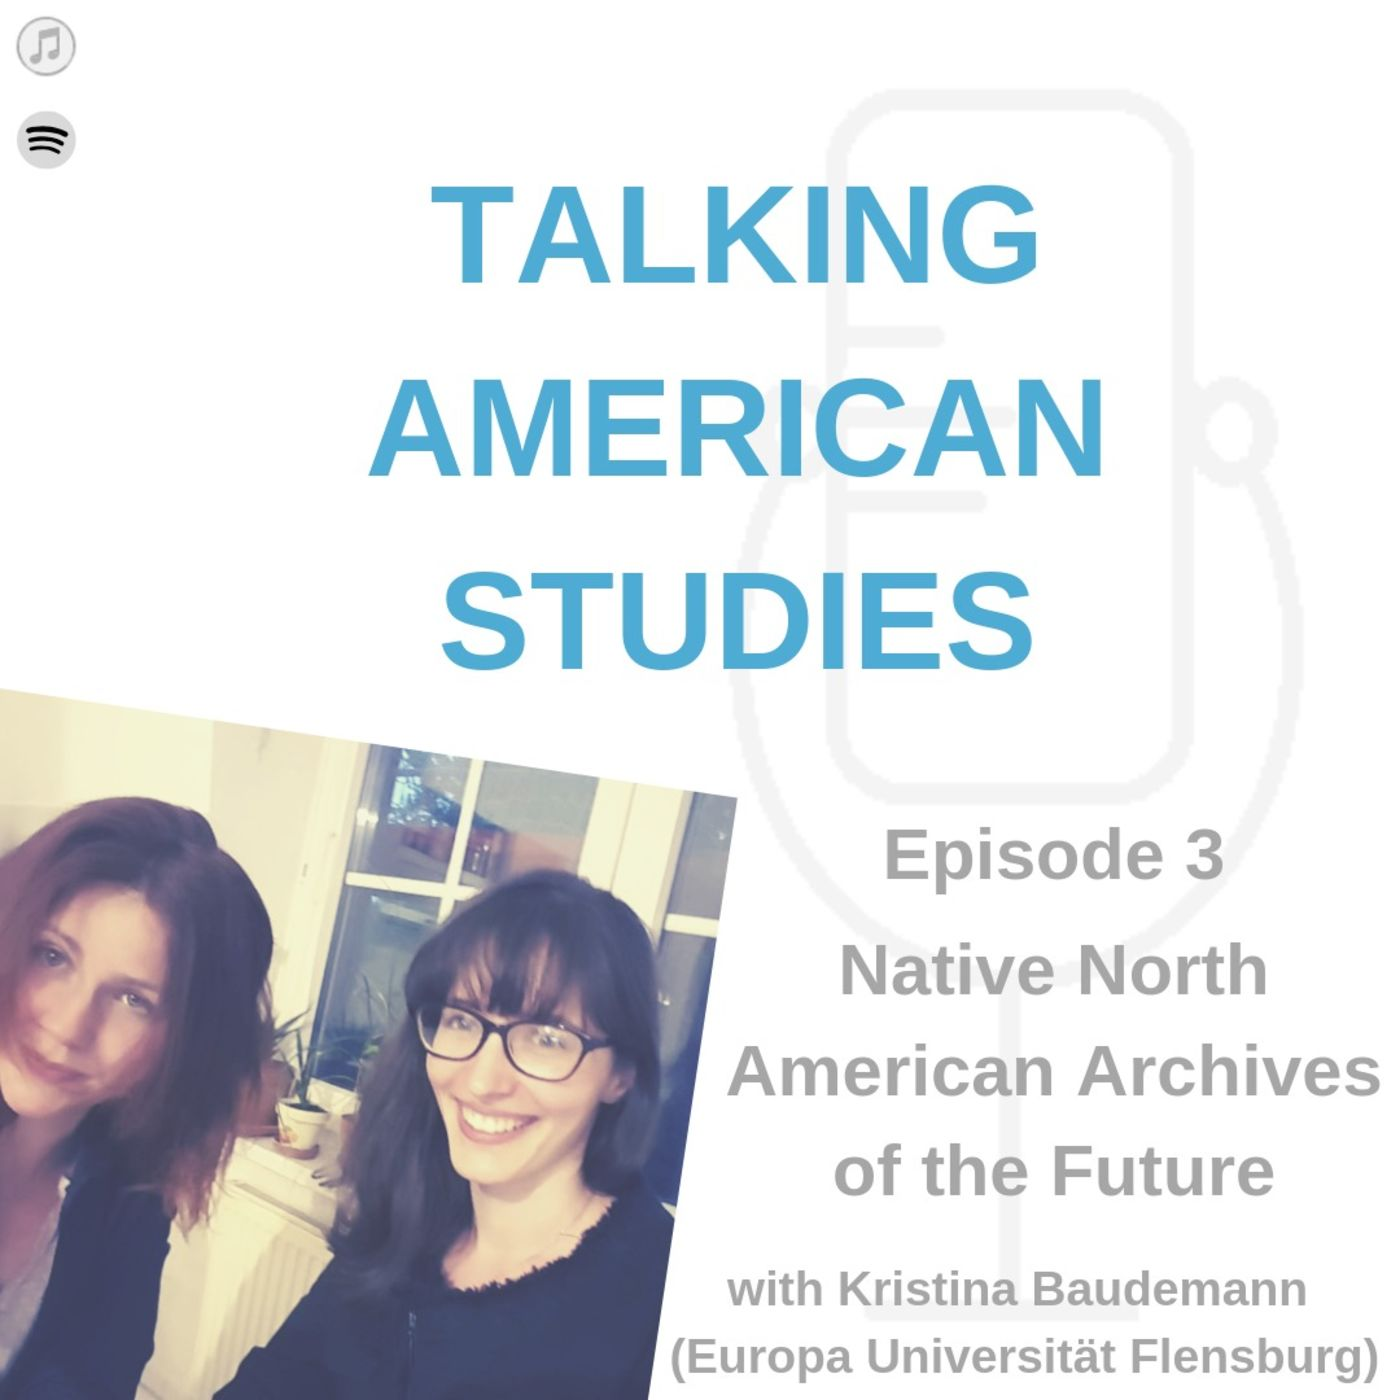 Native North American Archives of the Future with K. Baudemann